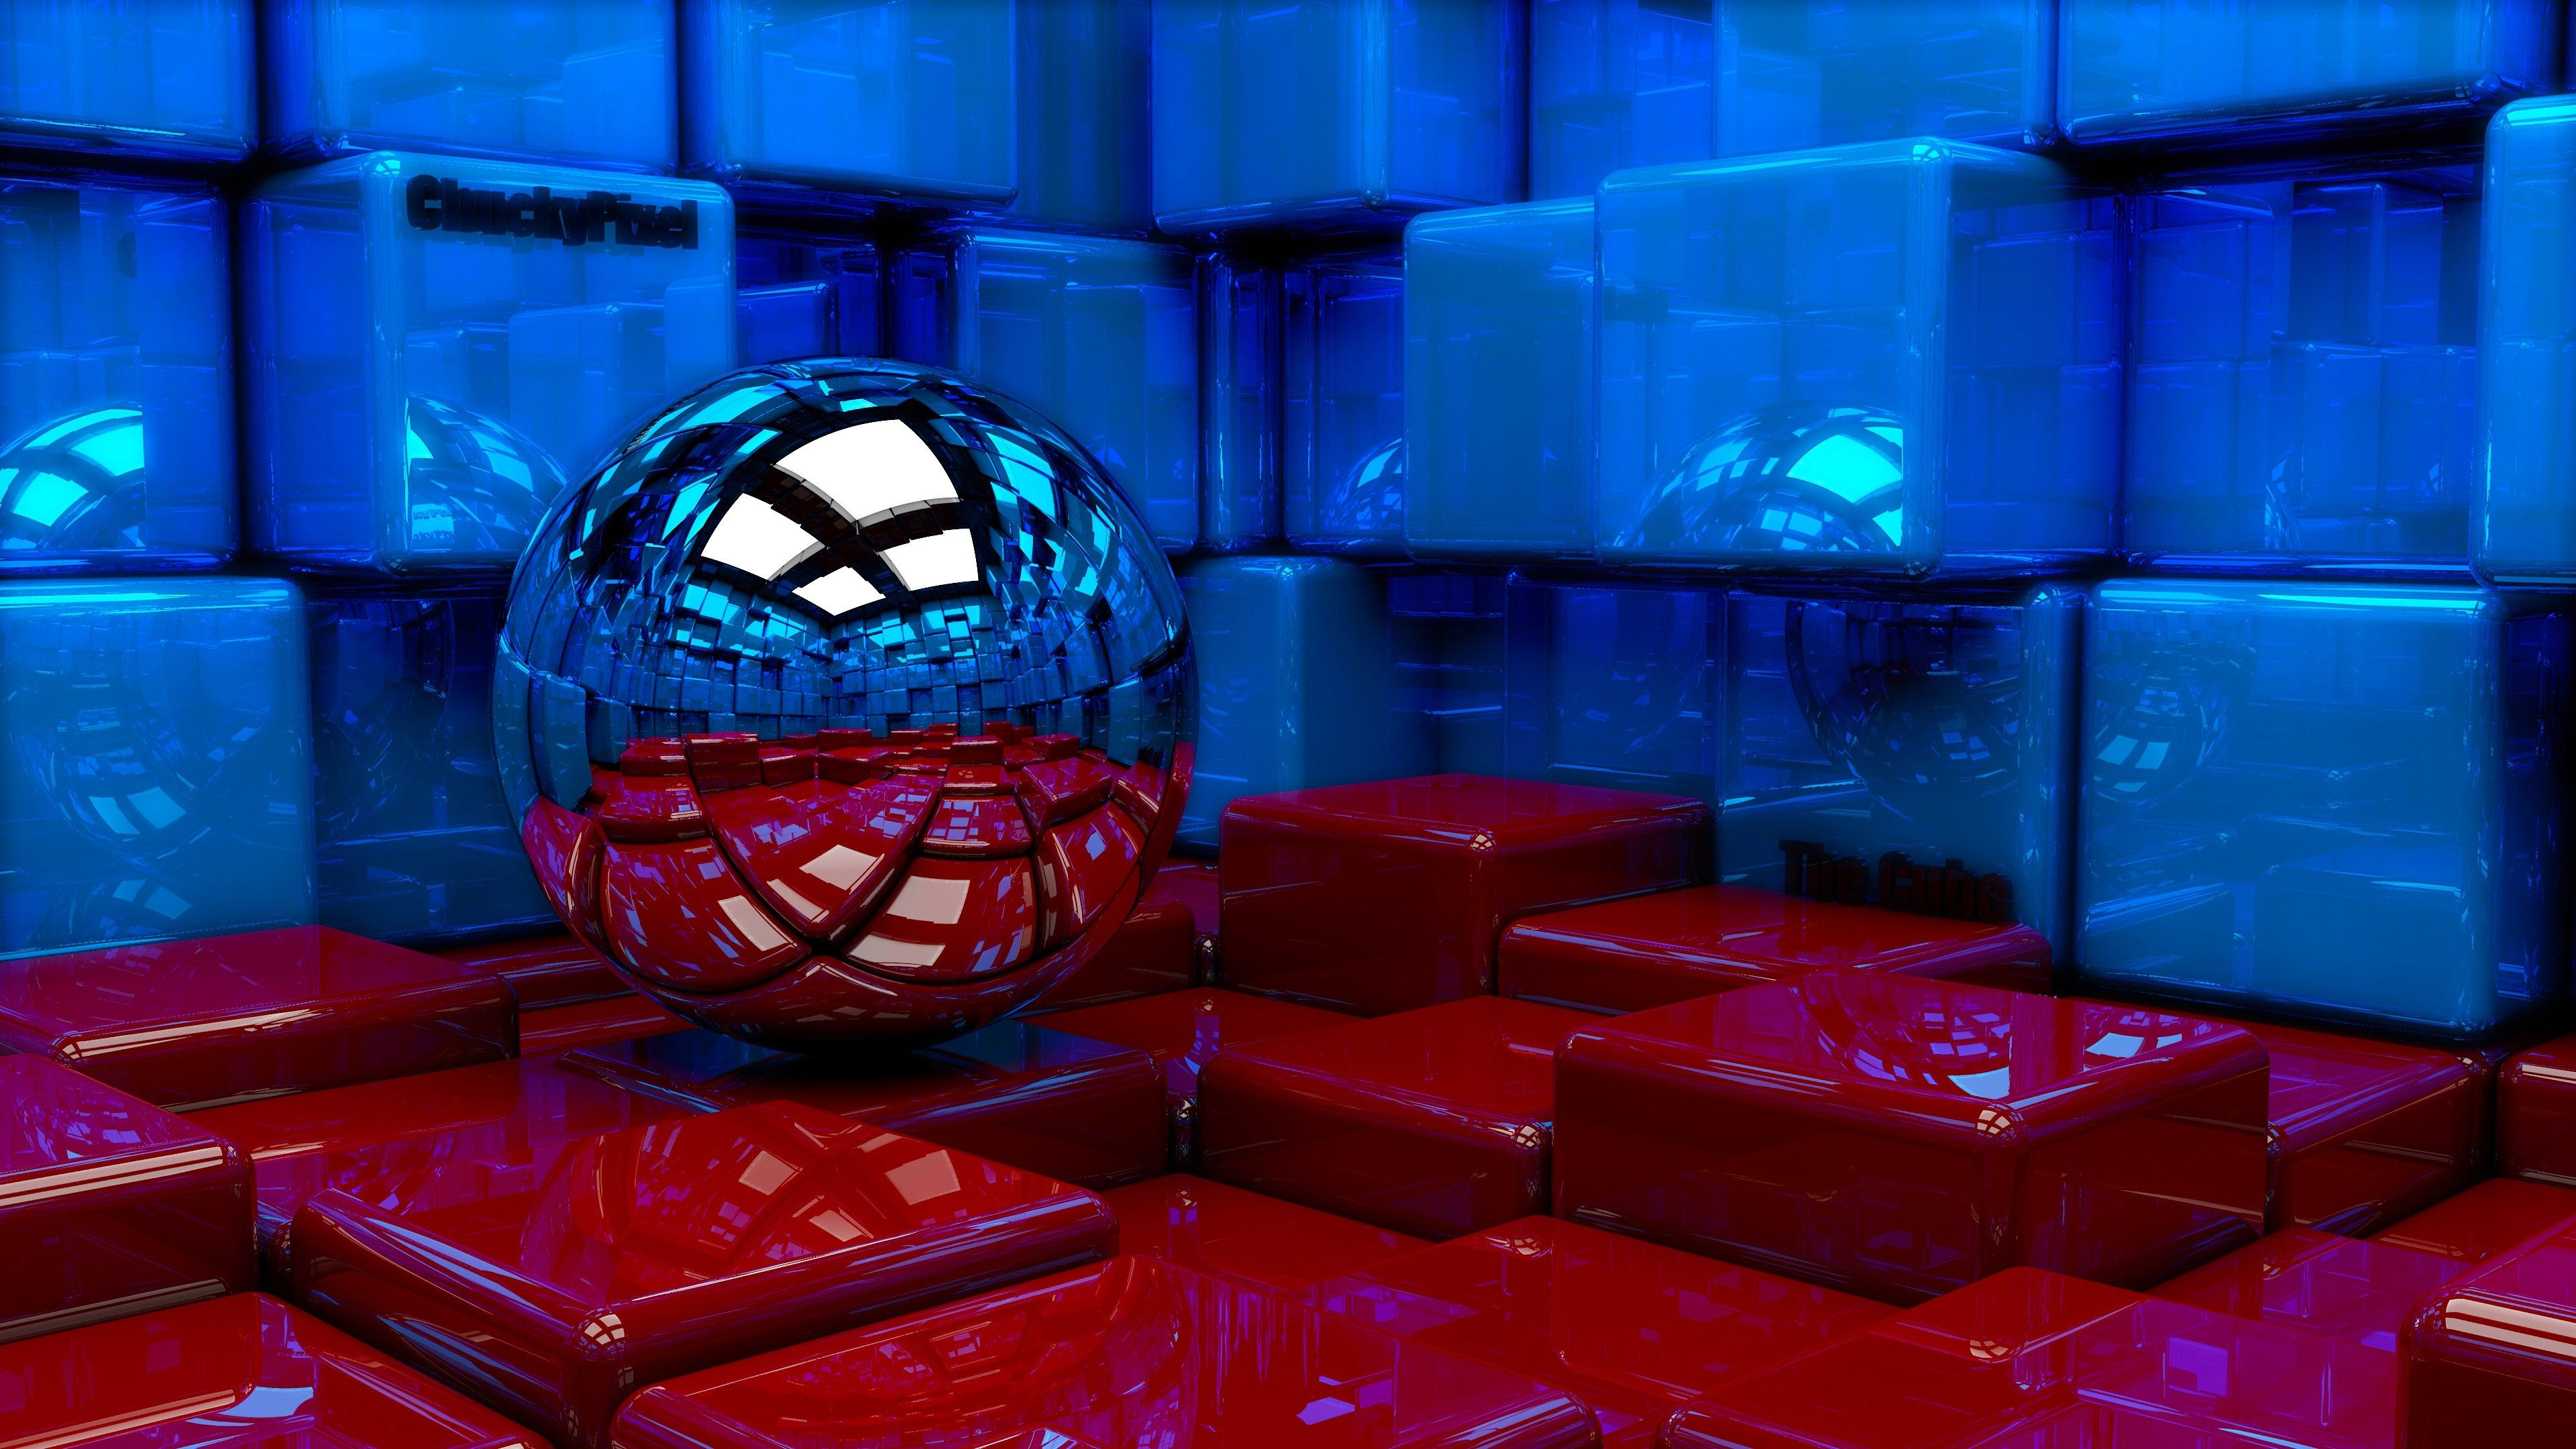 Download Wallpaper 3840x2160 Ball Cubes Metal Blue Red Reflection 4K Ultra HD Background